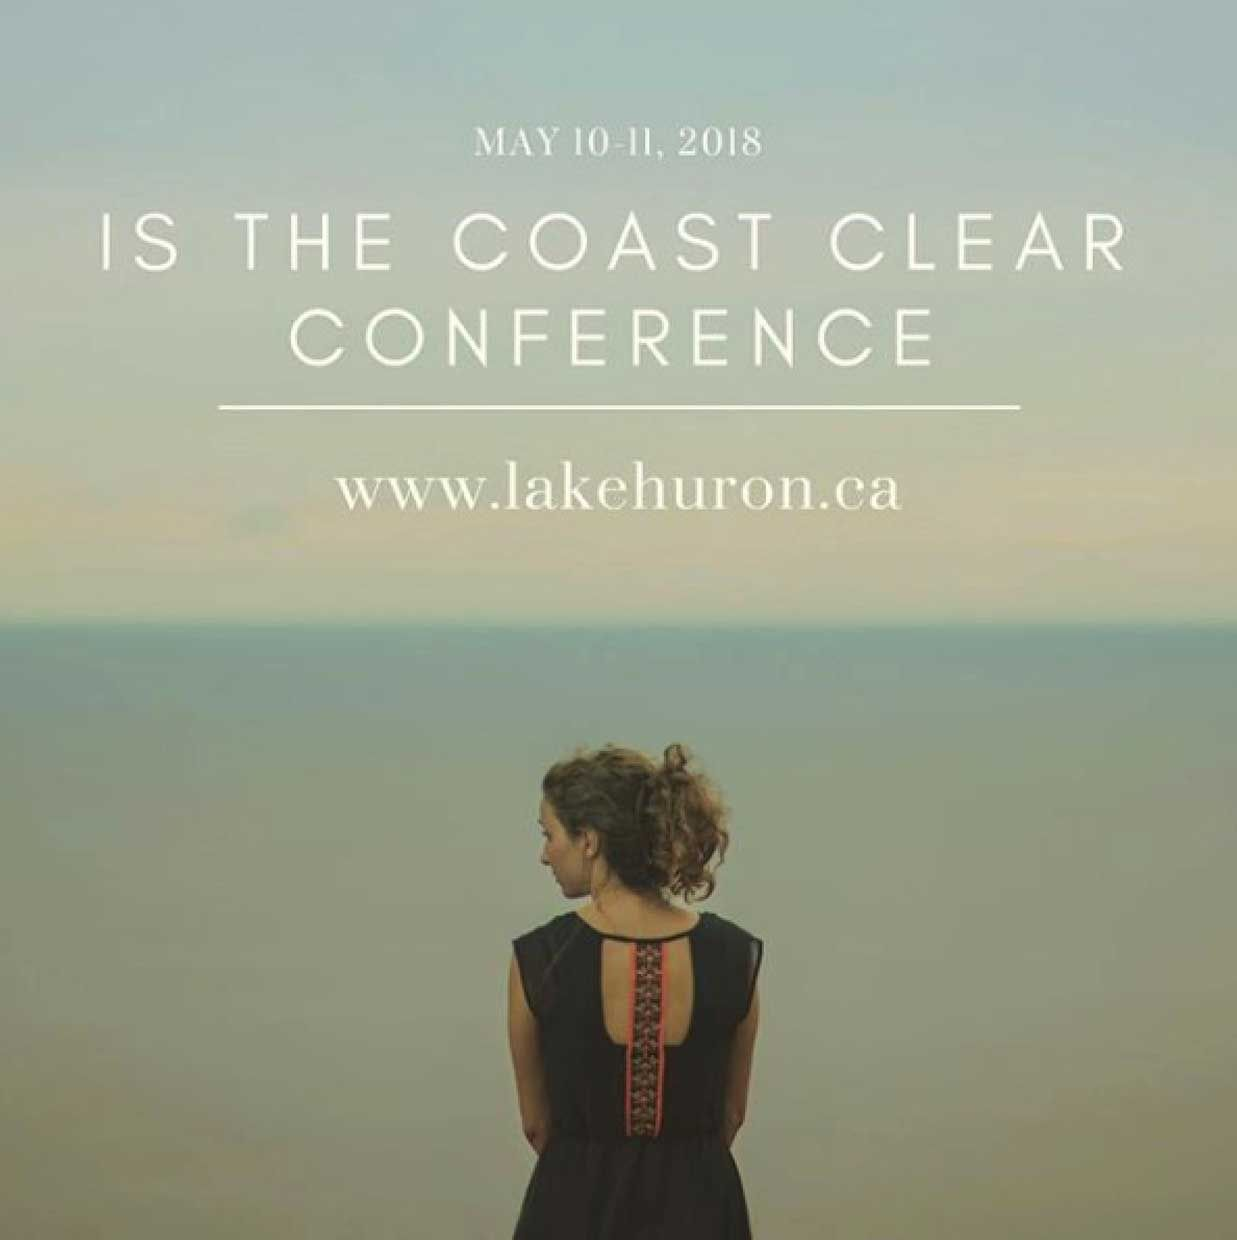 Is the Coast Clear? conference is May 10-11, 2018.